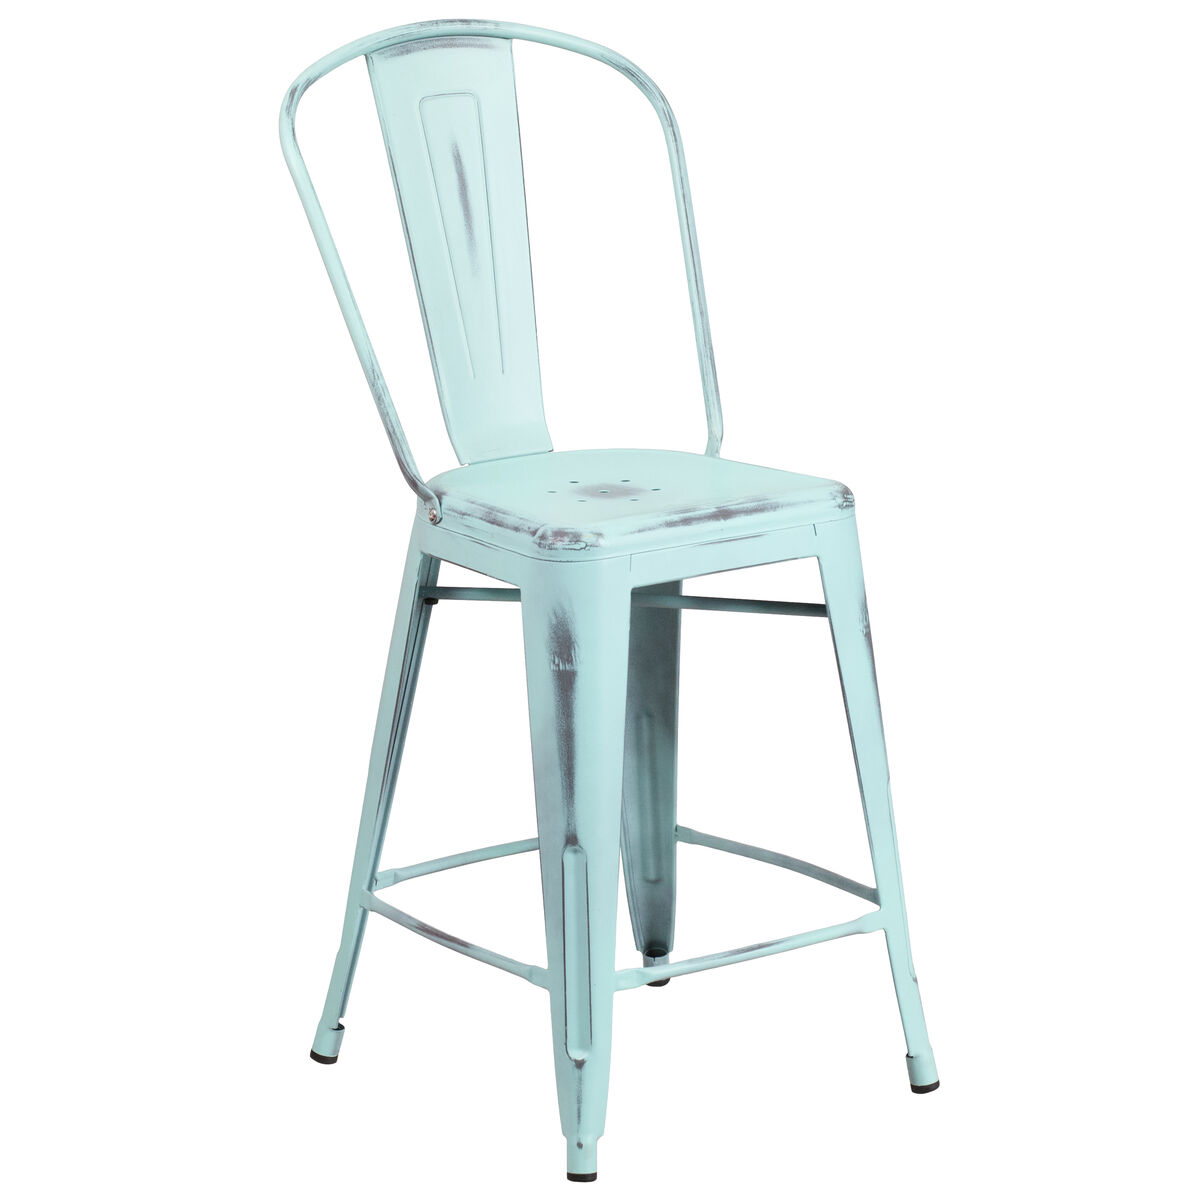 Distressed Gn Blue Metal Stool Et 3534 24 Db Gg